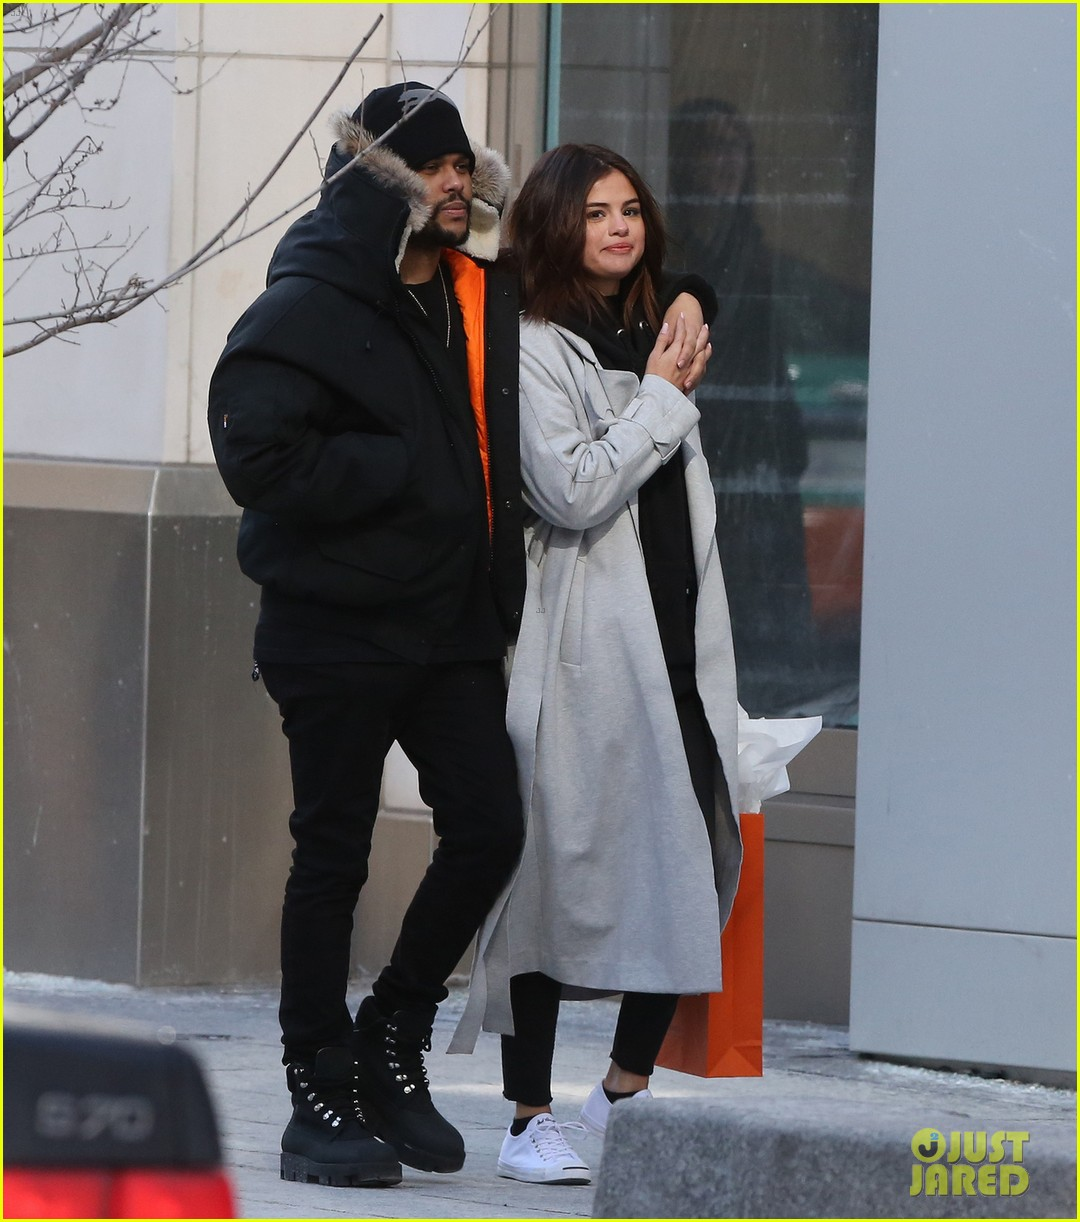 selena gomez the weeknd flaunted some pda in toronto 03